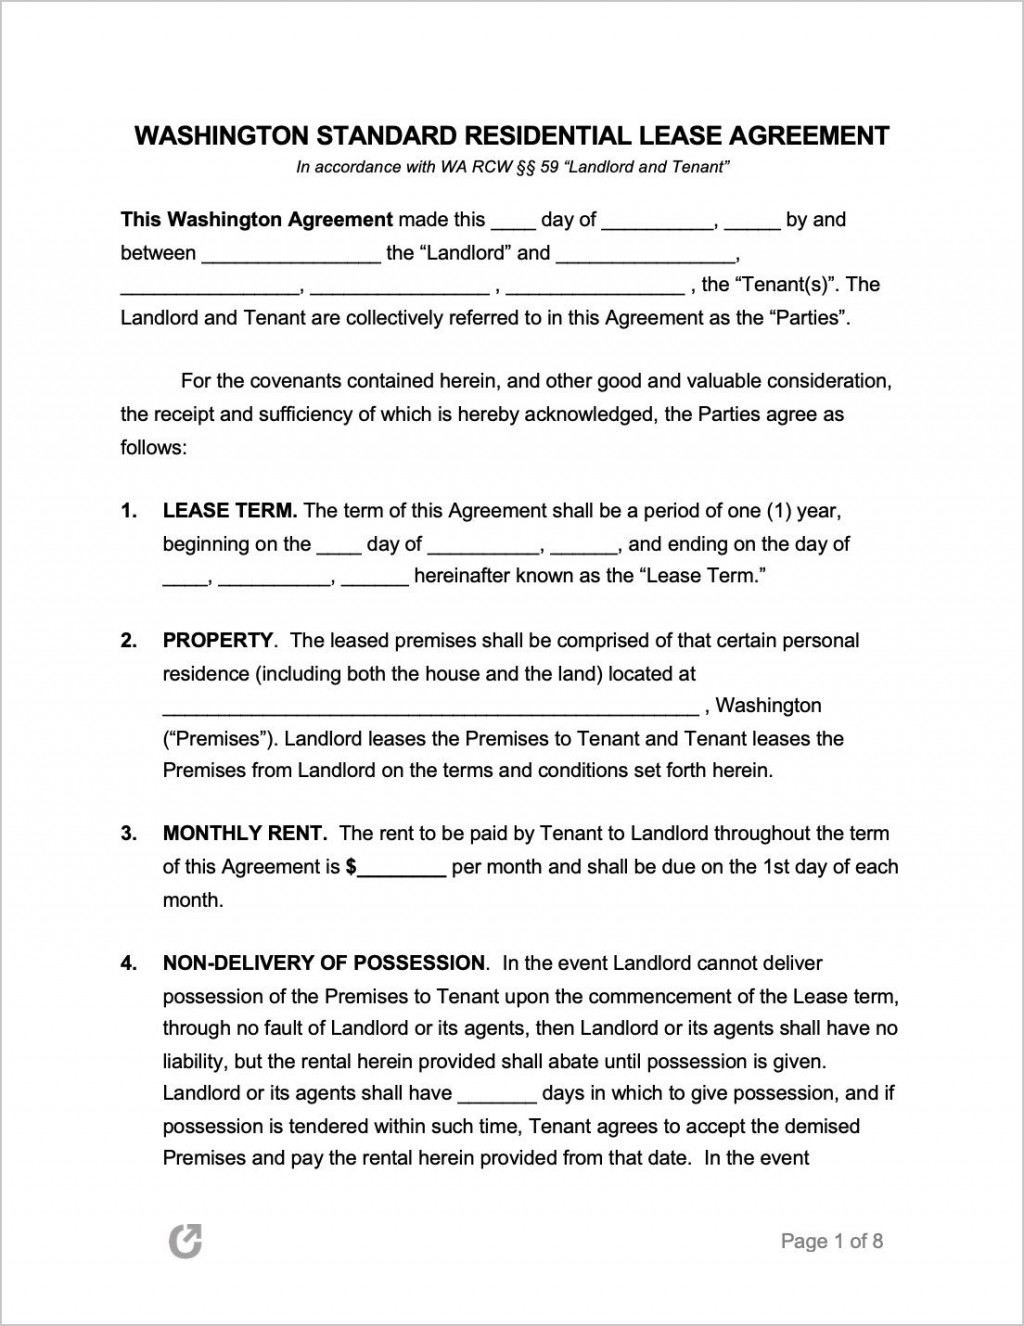 009 Staggering Residential Lease Agreement Template Design  Tenancy Form Alberta CaliforniaLarge